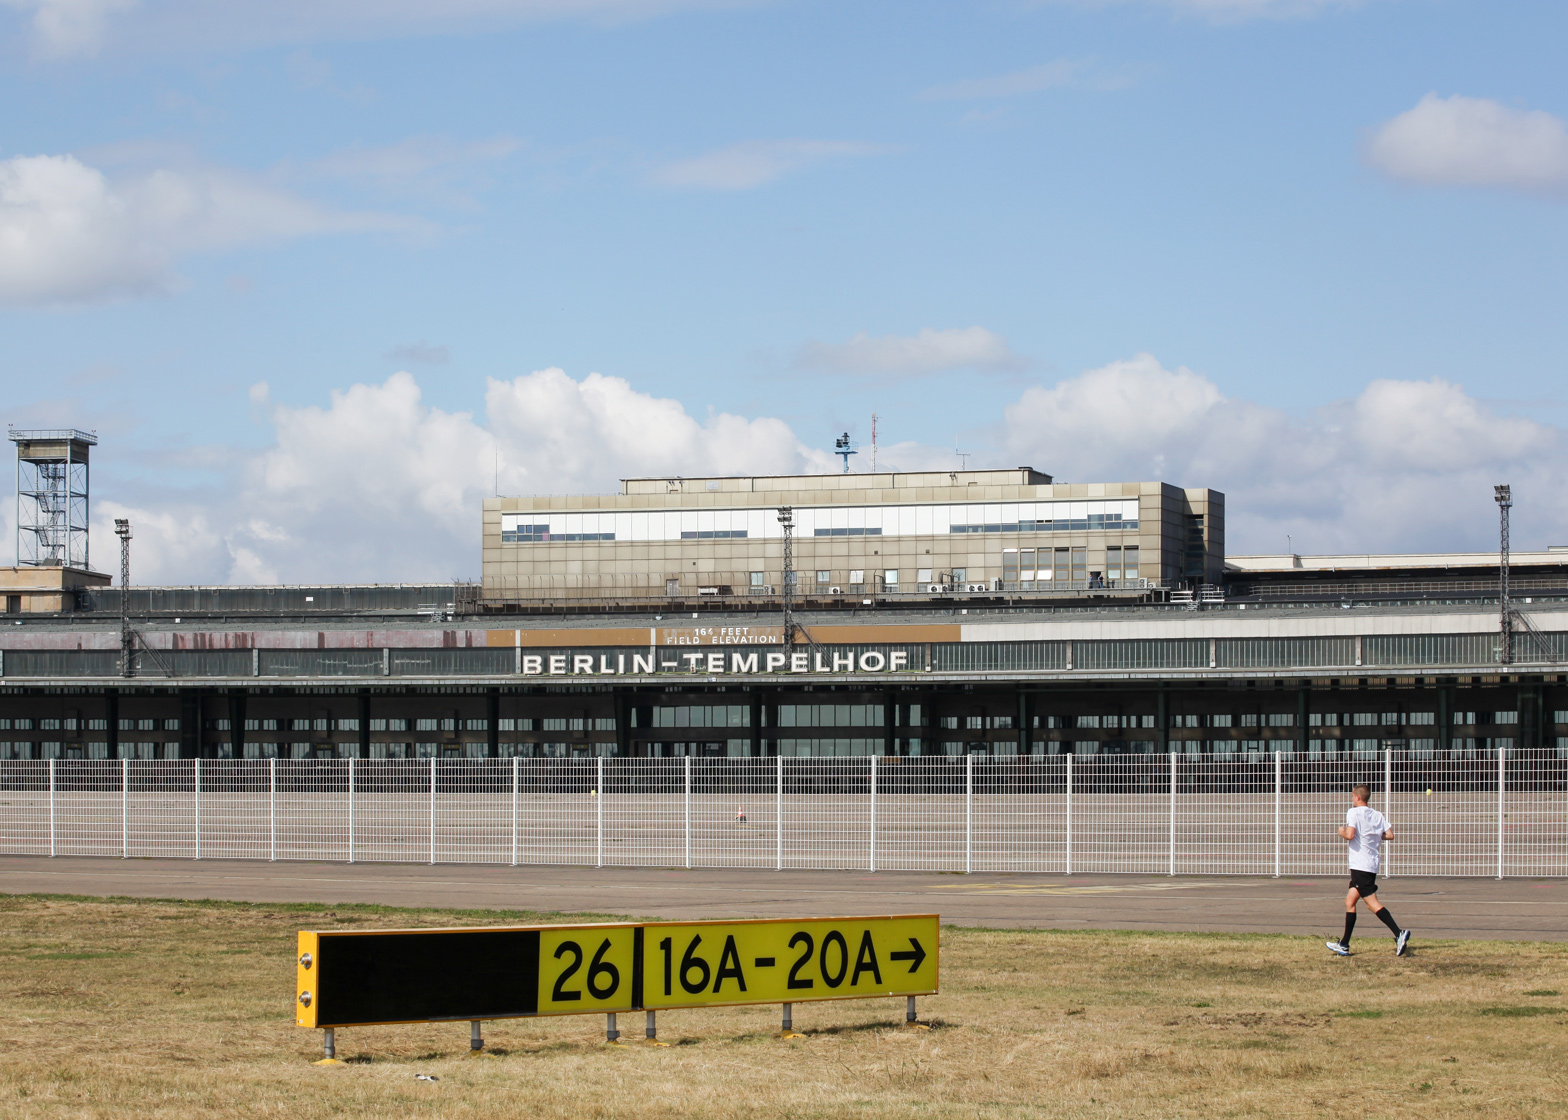 Berlin's decommissioned Tempelhof Airport is one of the city's most iconic buildings